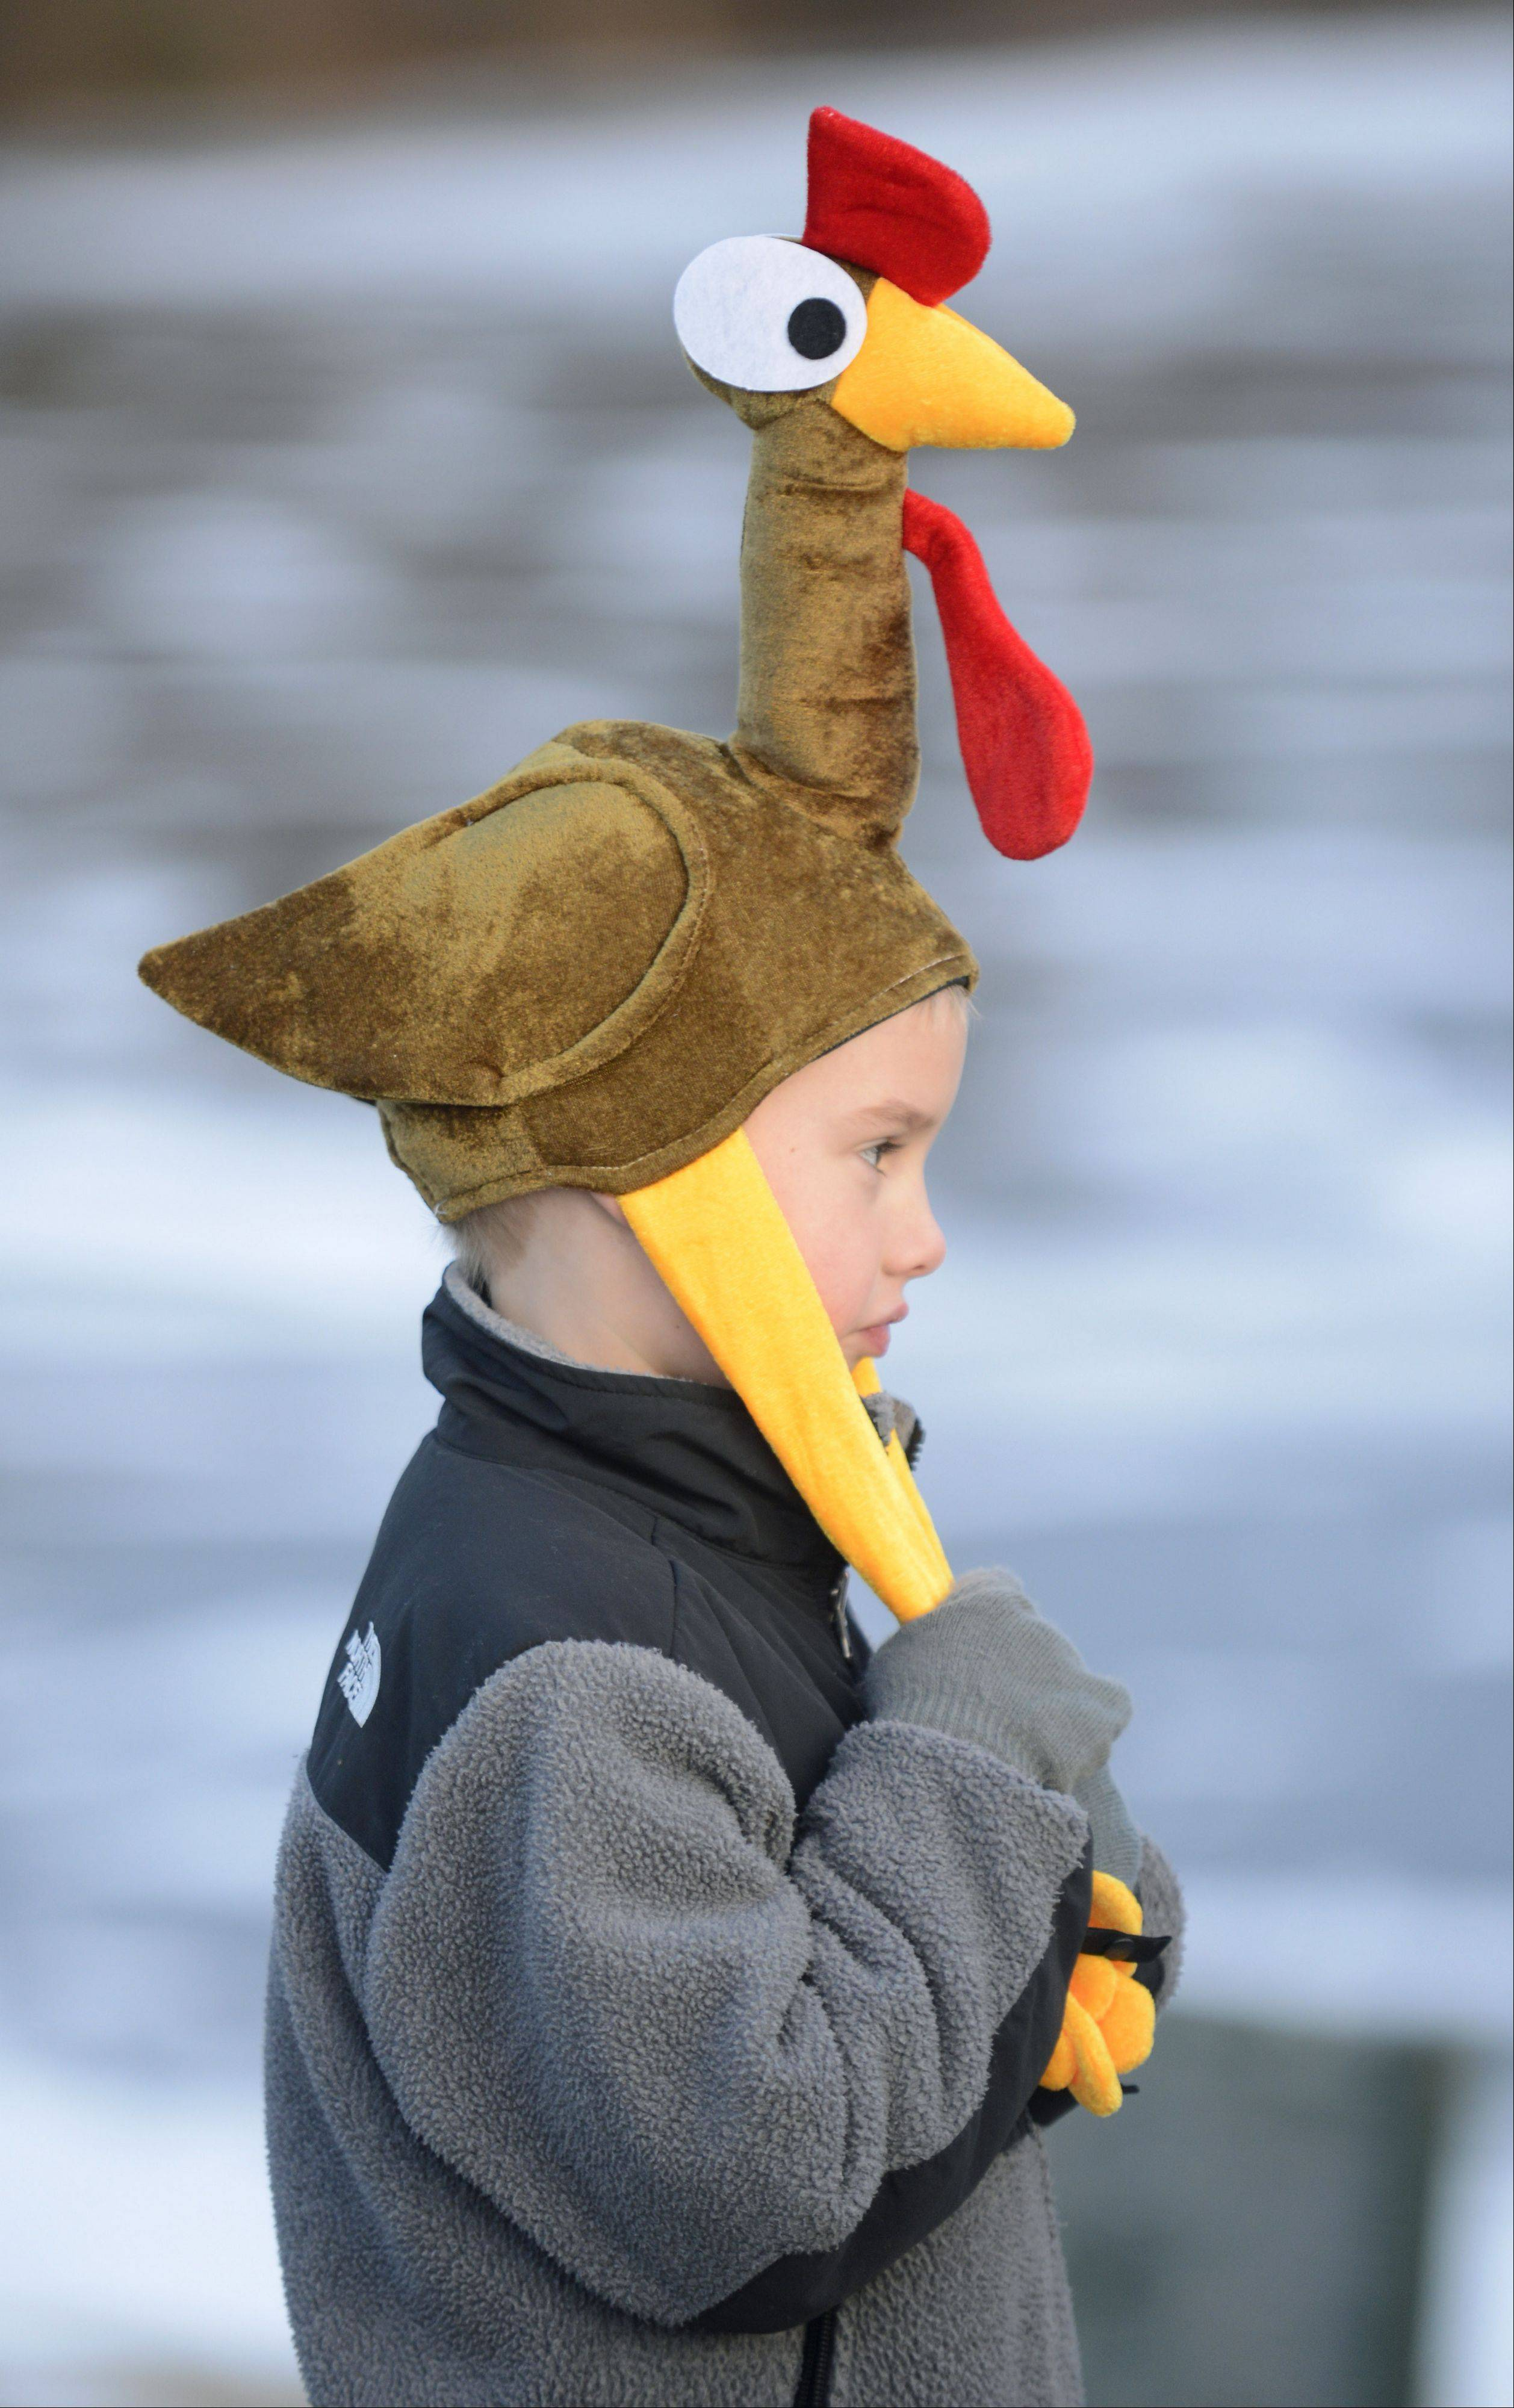 Jackson Fuhrmann, 6, of Geneva, donned a turkey hat to run in the Youth Mile in the annual Fox and Turkey Races Thanksgiving Day in Batavia. He and his mother, Jennifer, have been participating in the races the past three years.